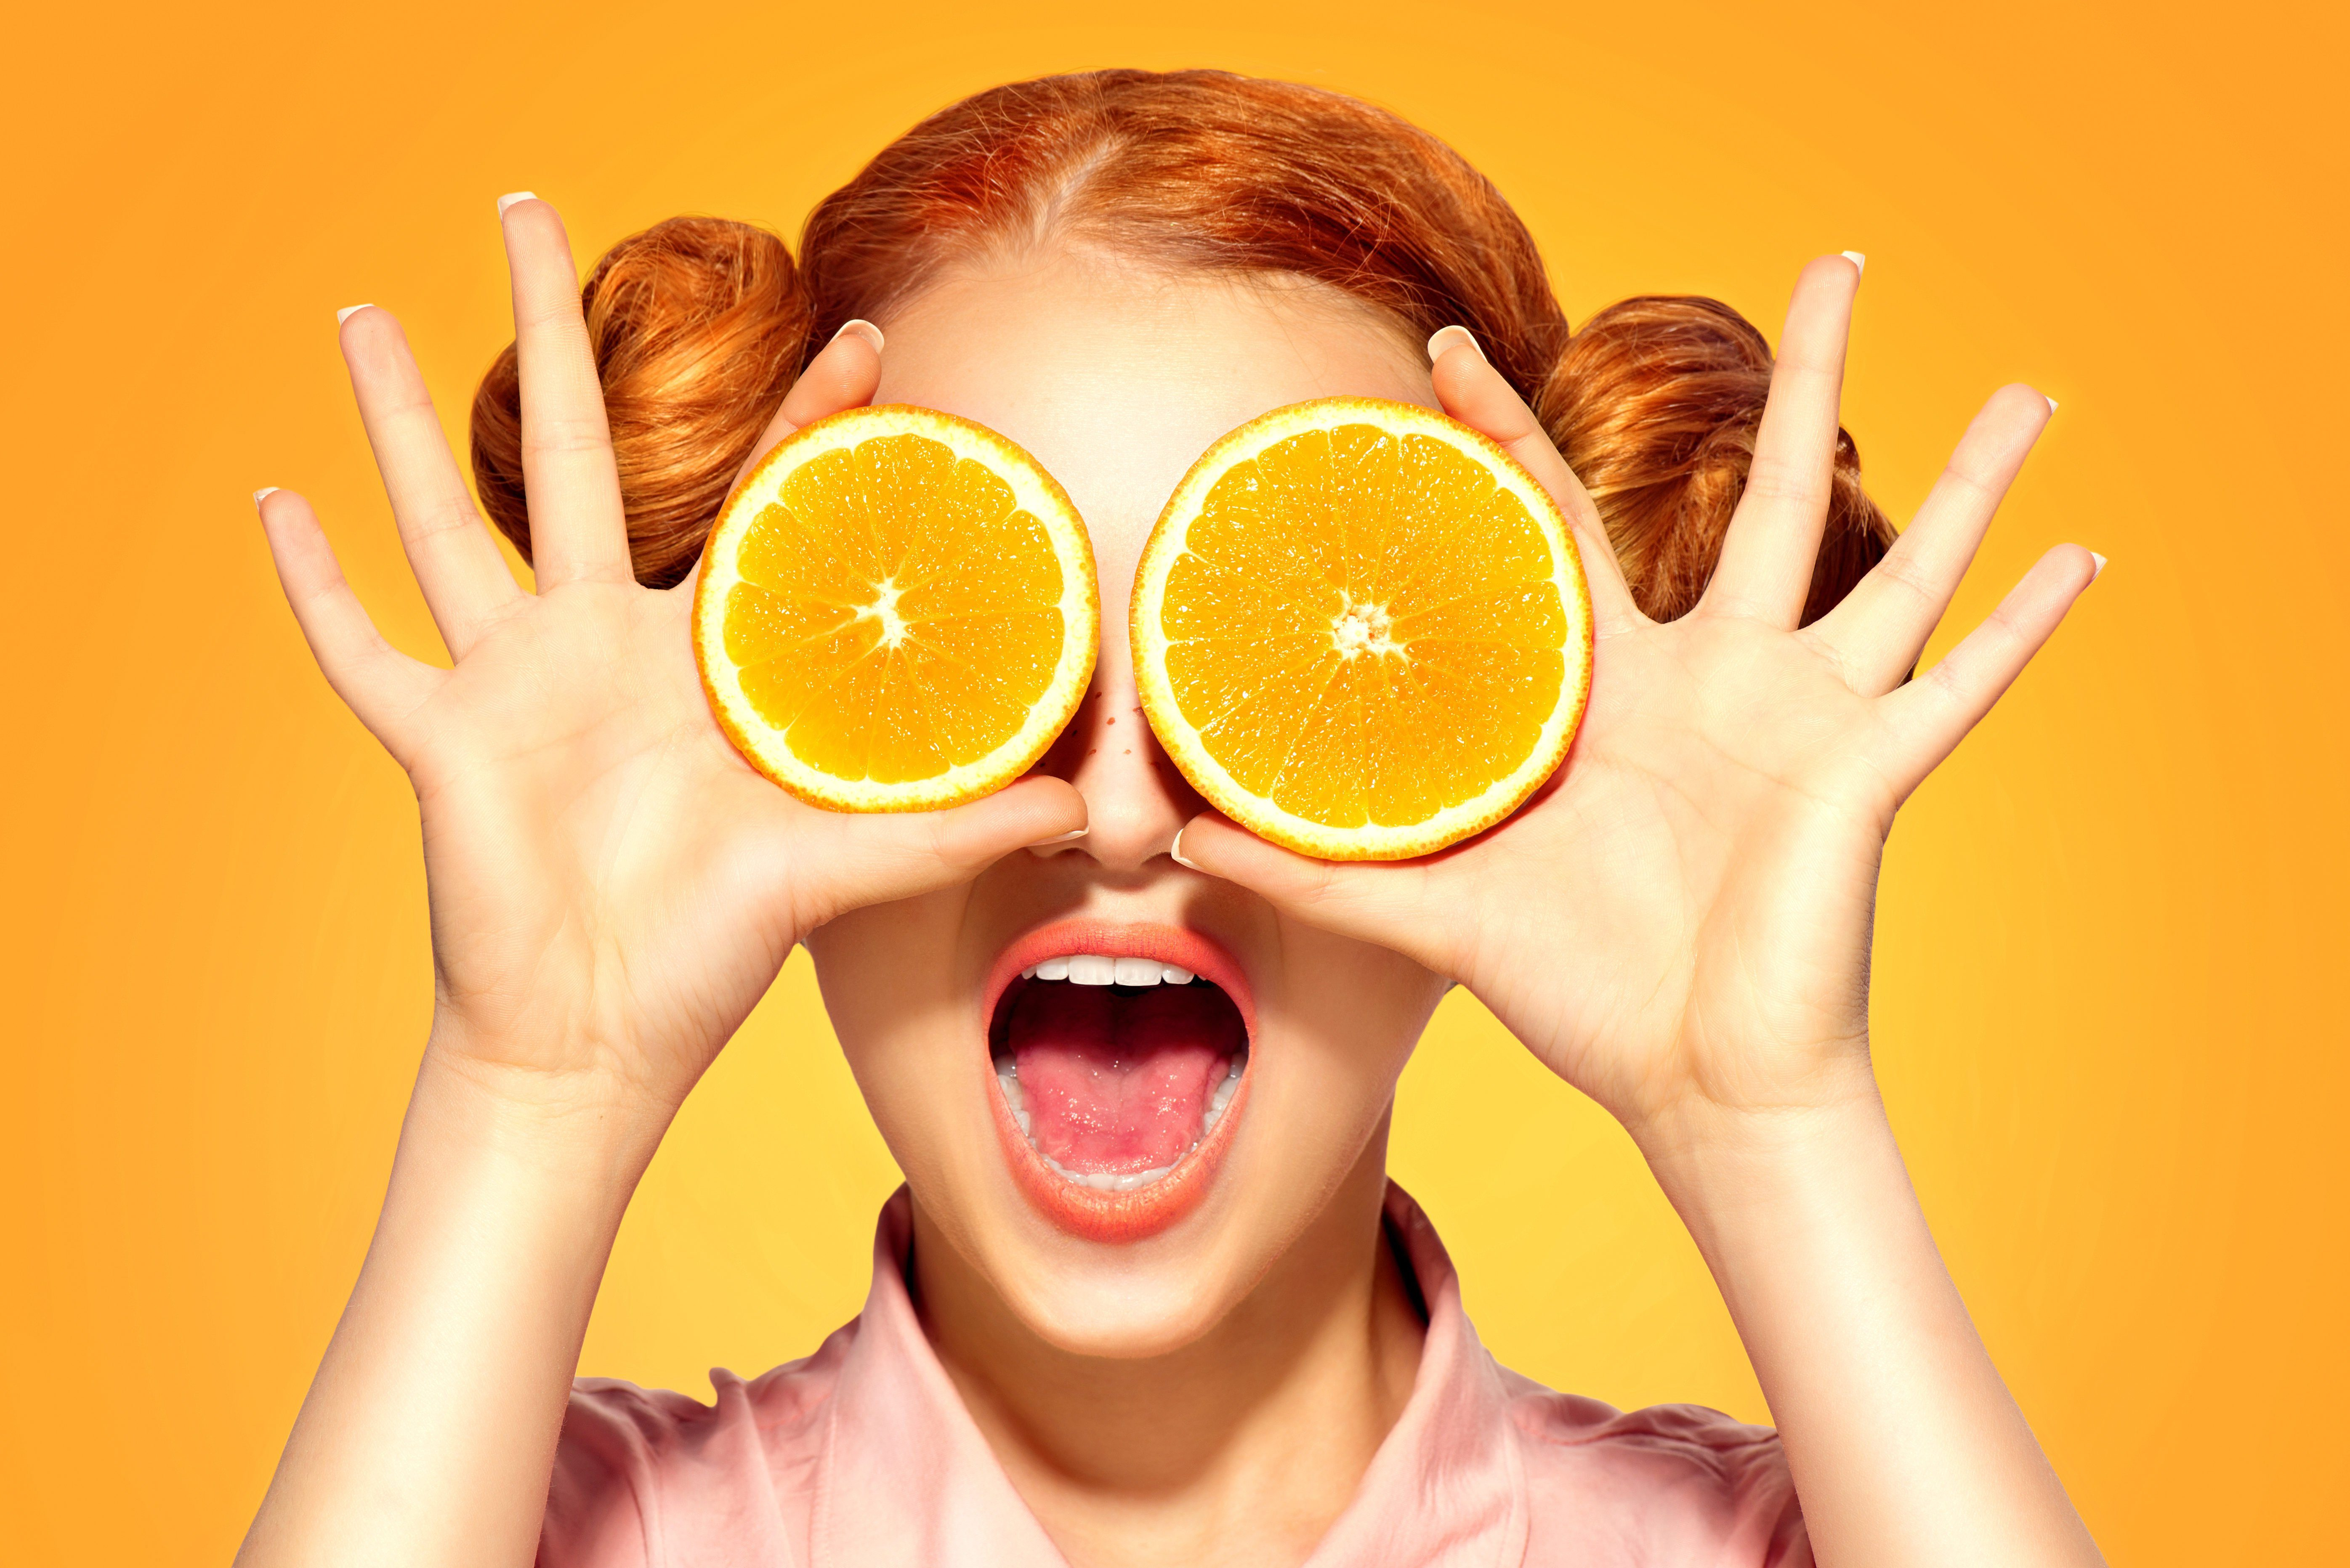 Beauty Model Girl takes Juicy Oranges. Beautiful Joyful teen girl with freckles, funny red hairstyle and yellow makeup. Professional make up. Holding Orange Slices and laughing, emotions